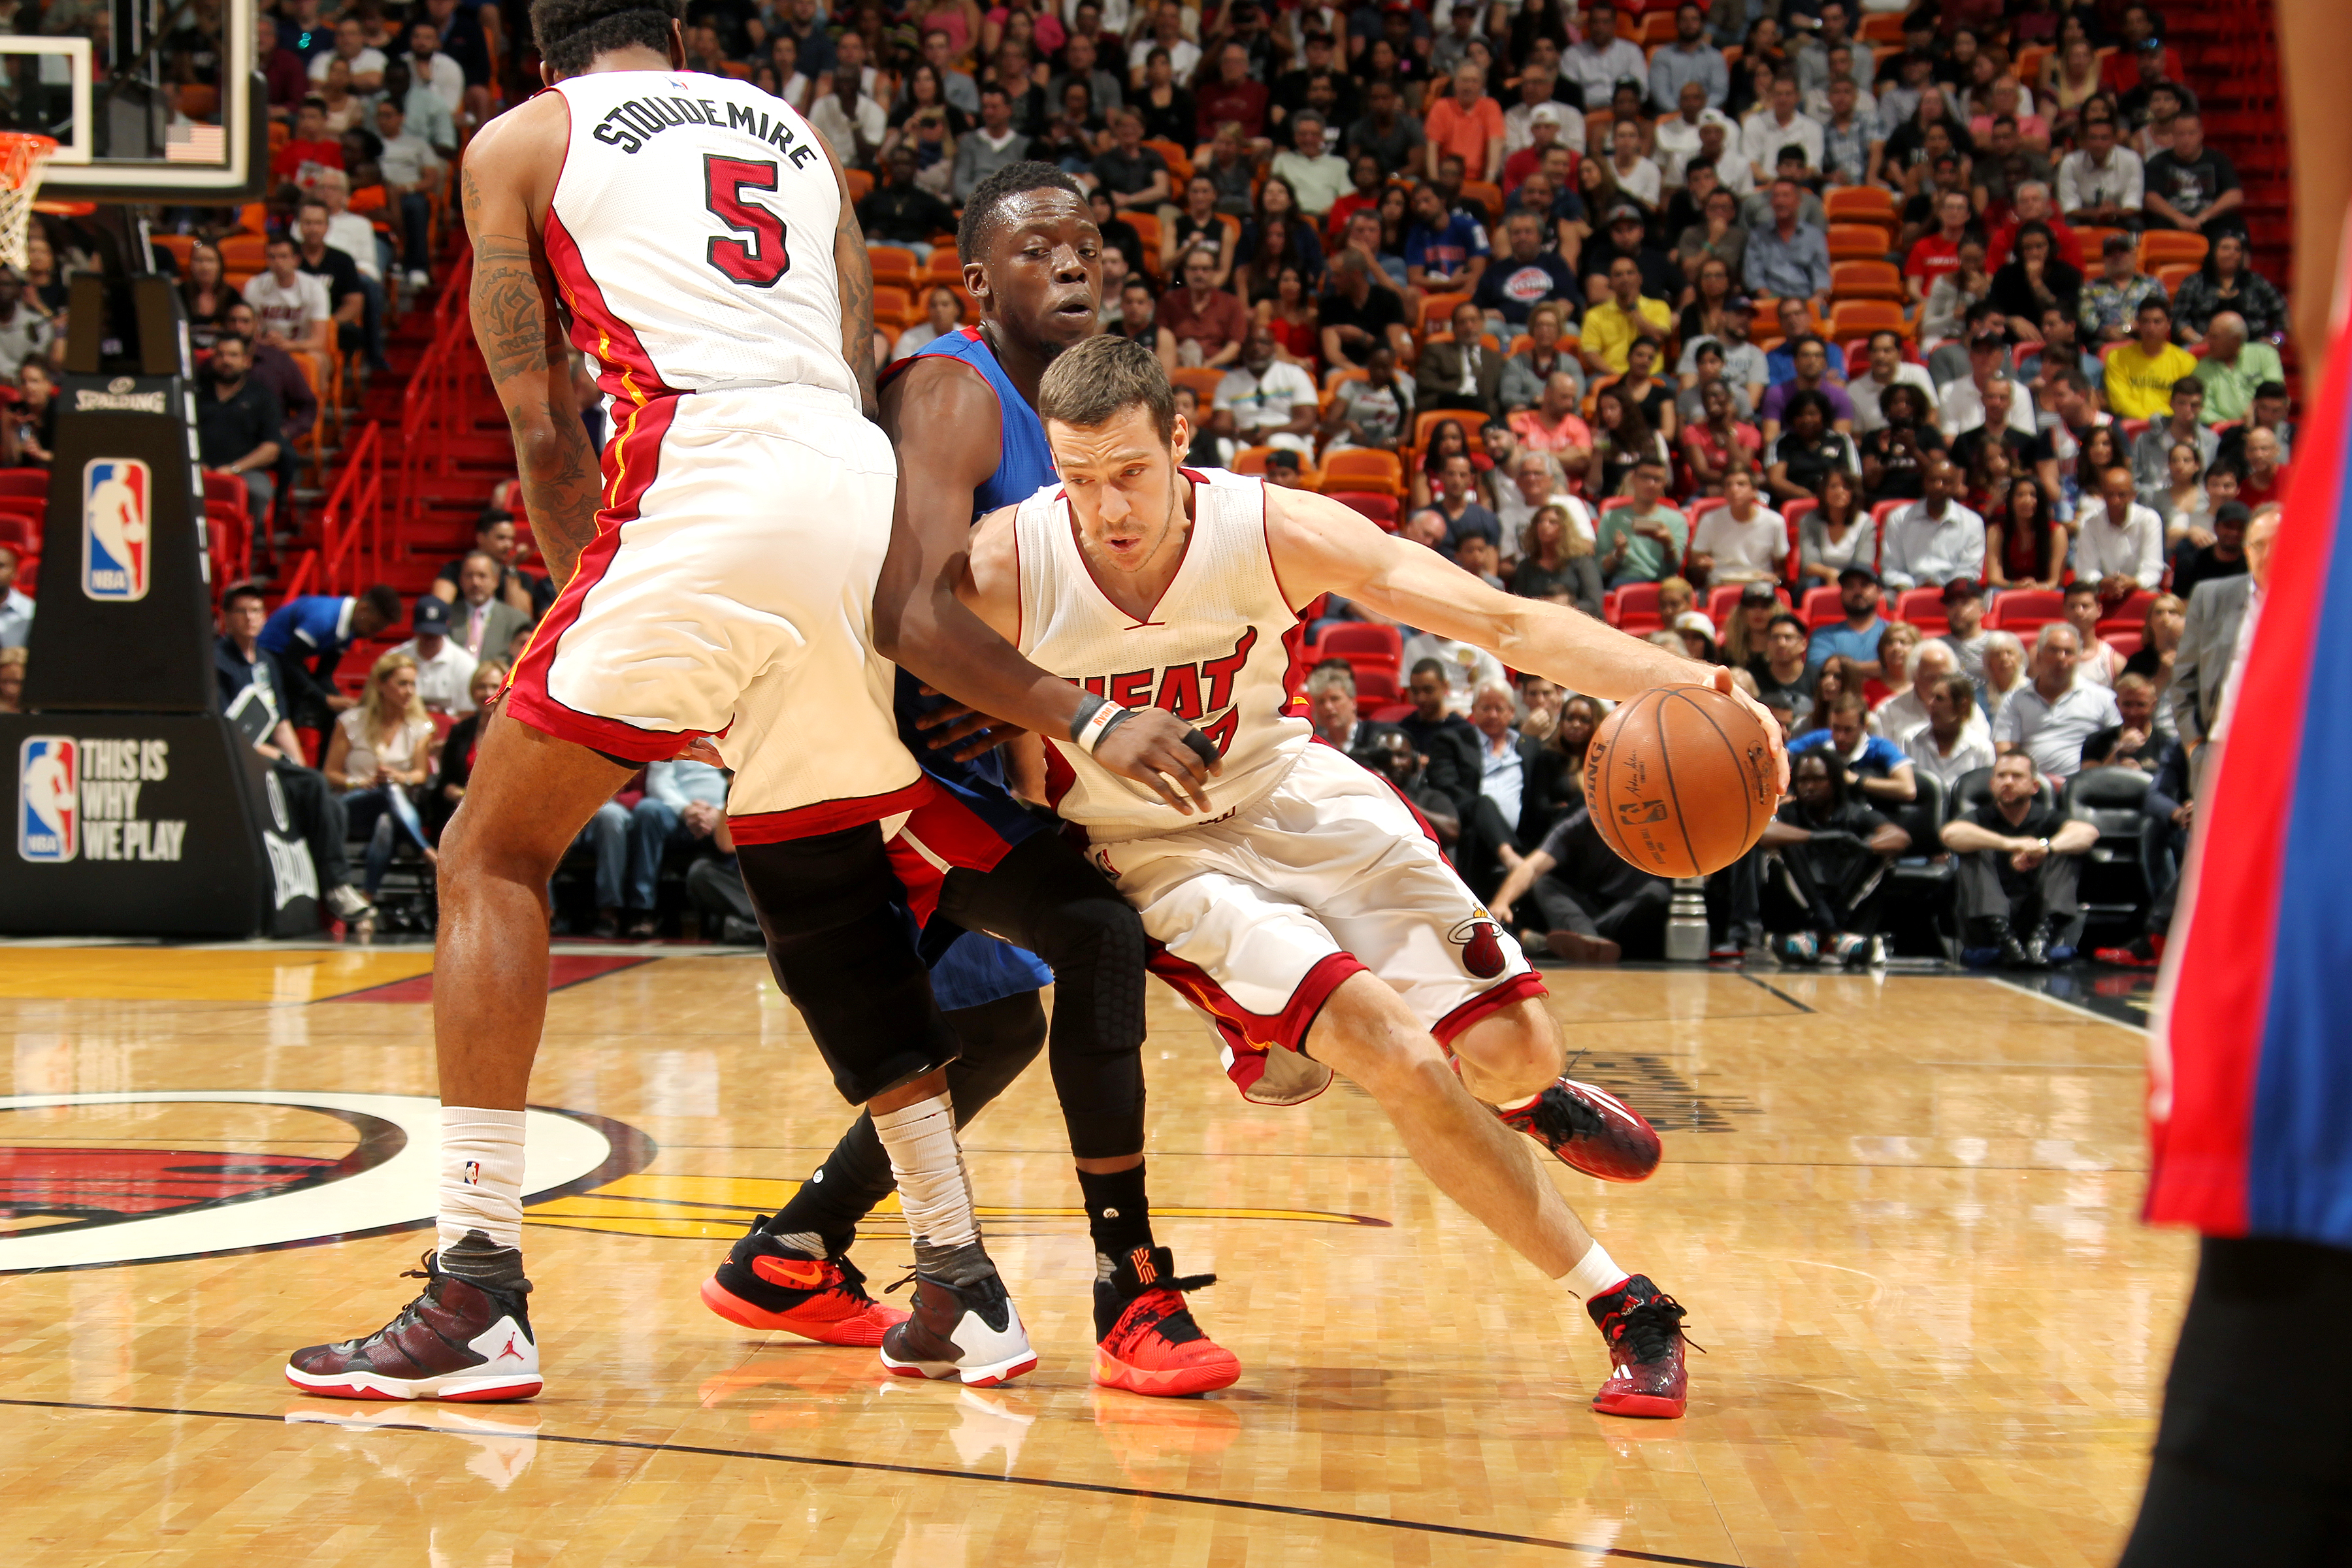 MIAMI, FL - APRIL 5: Goran Dragic #7 of the Miami Heat handles the ball during the game against the Detroit Pistons on April 5, 2016 at AmericanAirlines Arena in Miami, Florida. (Photo by Issac Baldizon/NBAE via Getty Images)